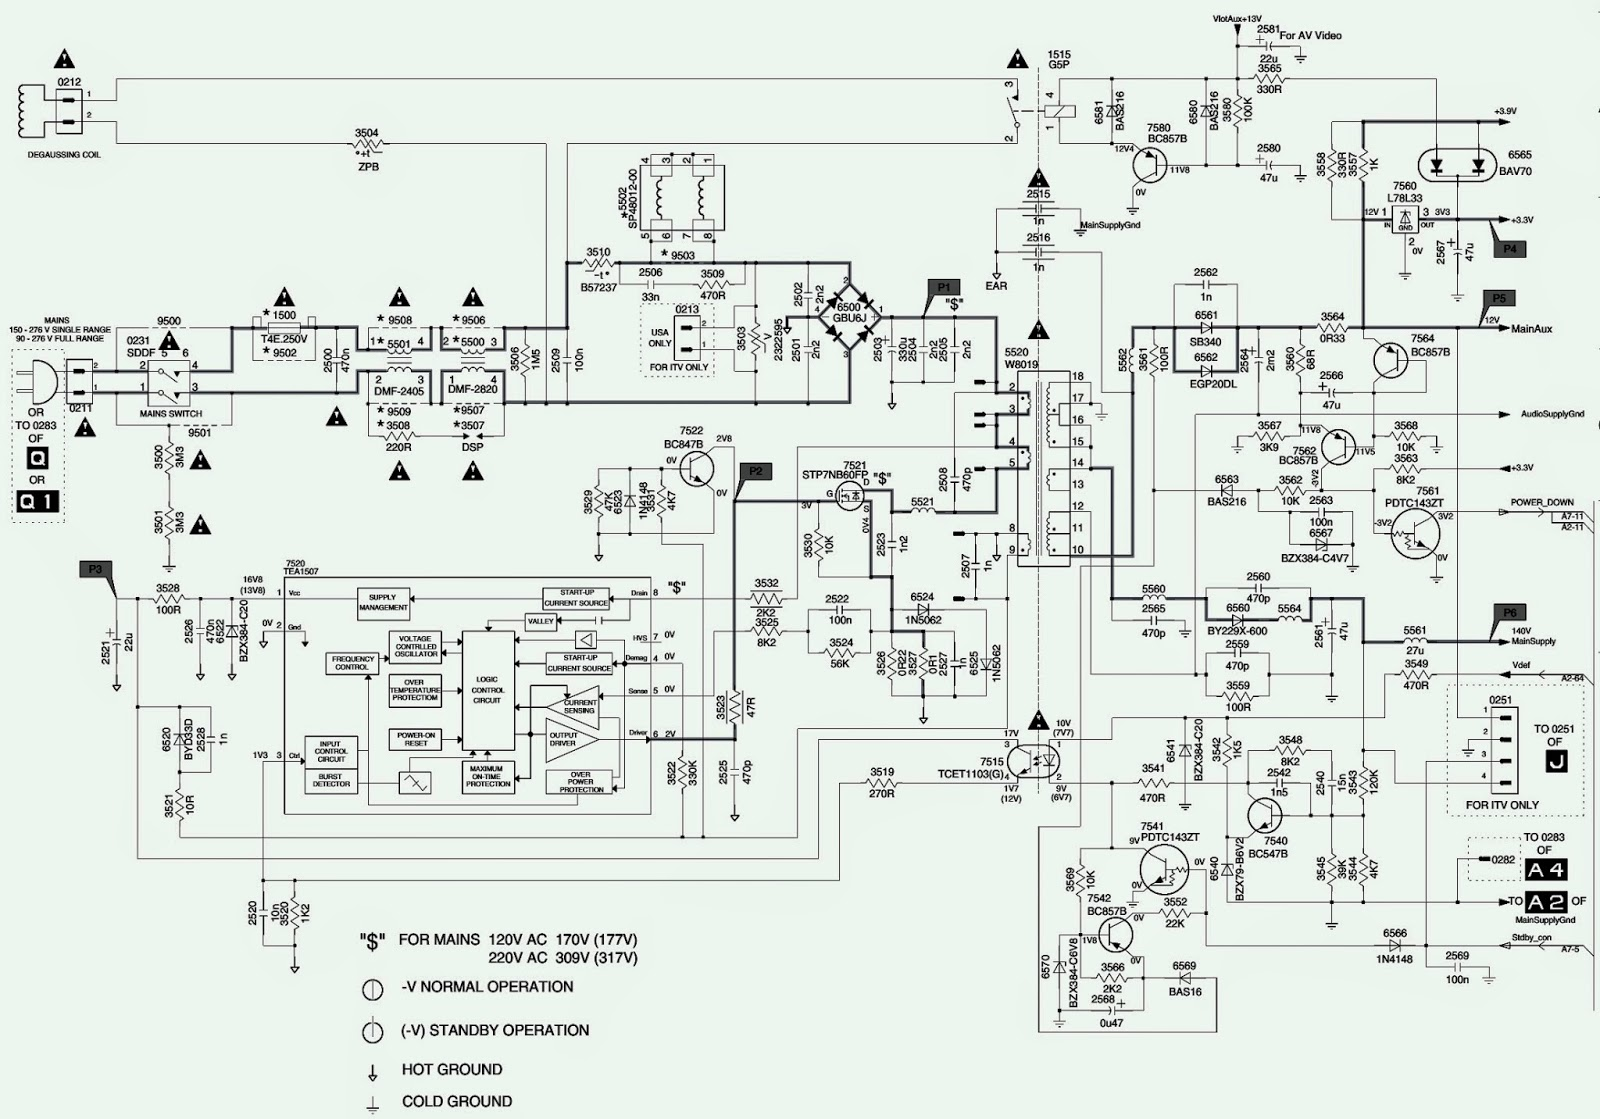 philips magnavox  u2013 32st220p  u2013 27pt543  u2013 tv  u2013 power supply  smps  schematic